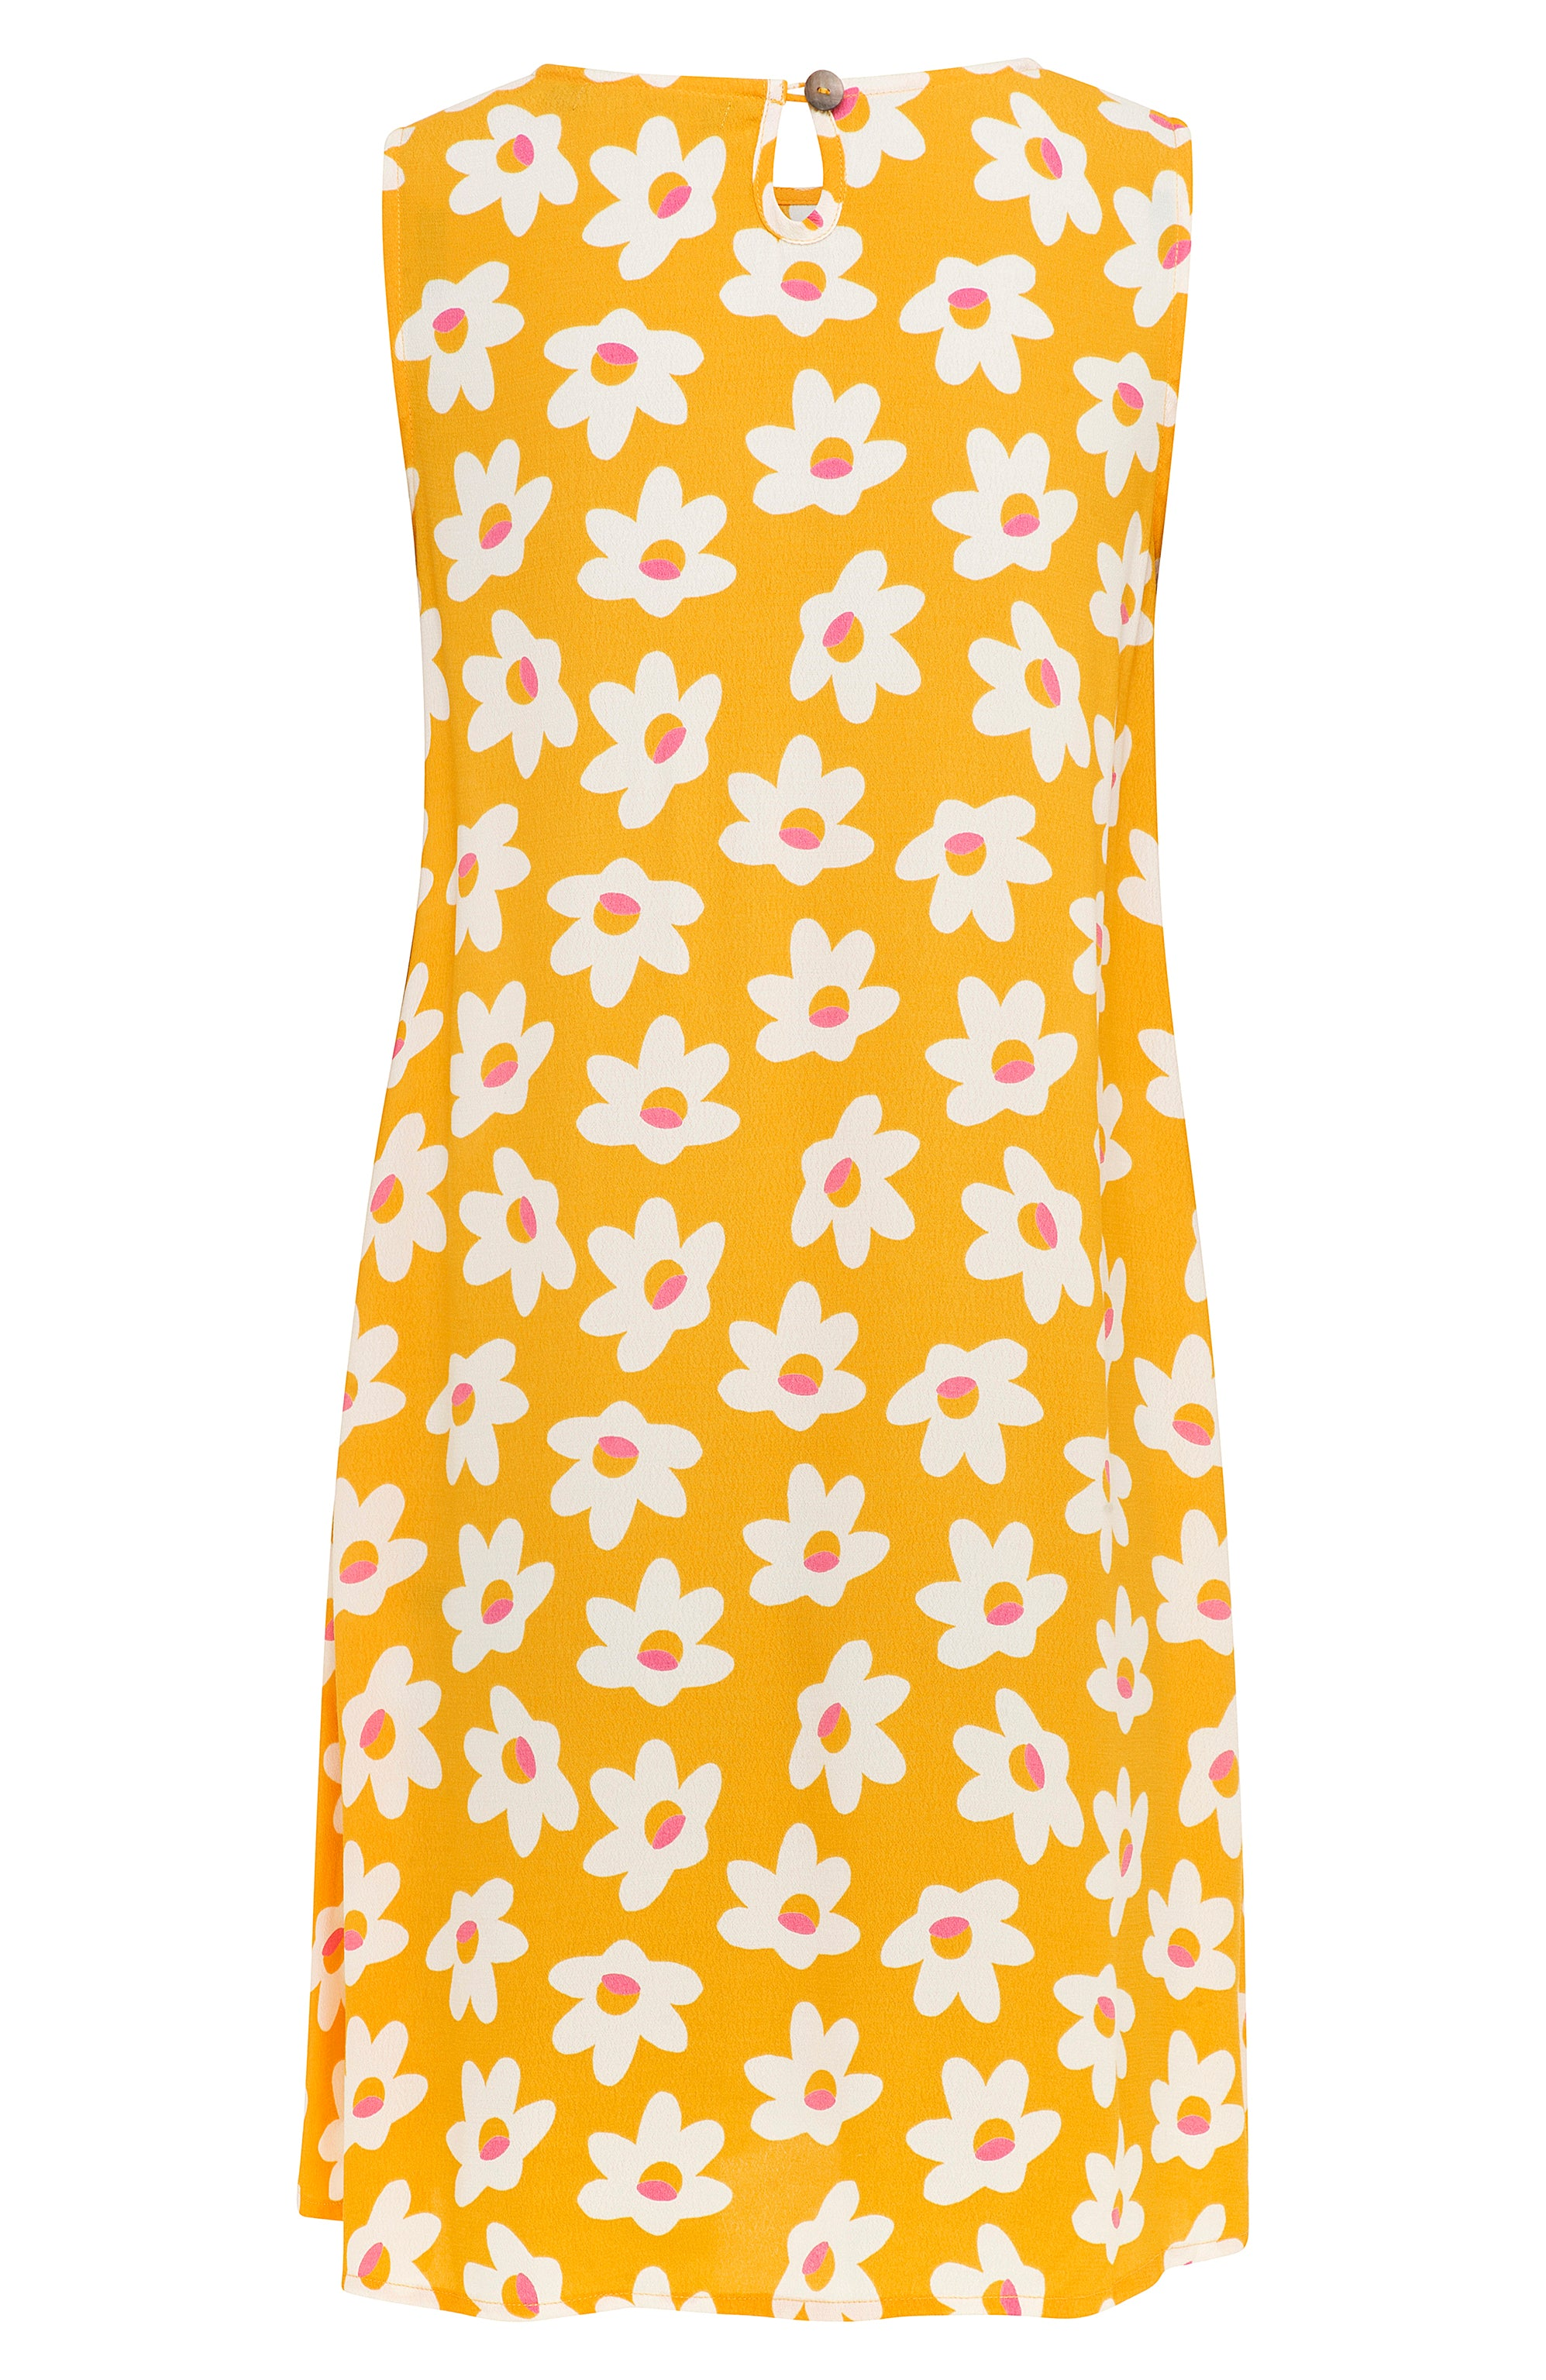 Sleeveless Tina Dress In Daisy